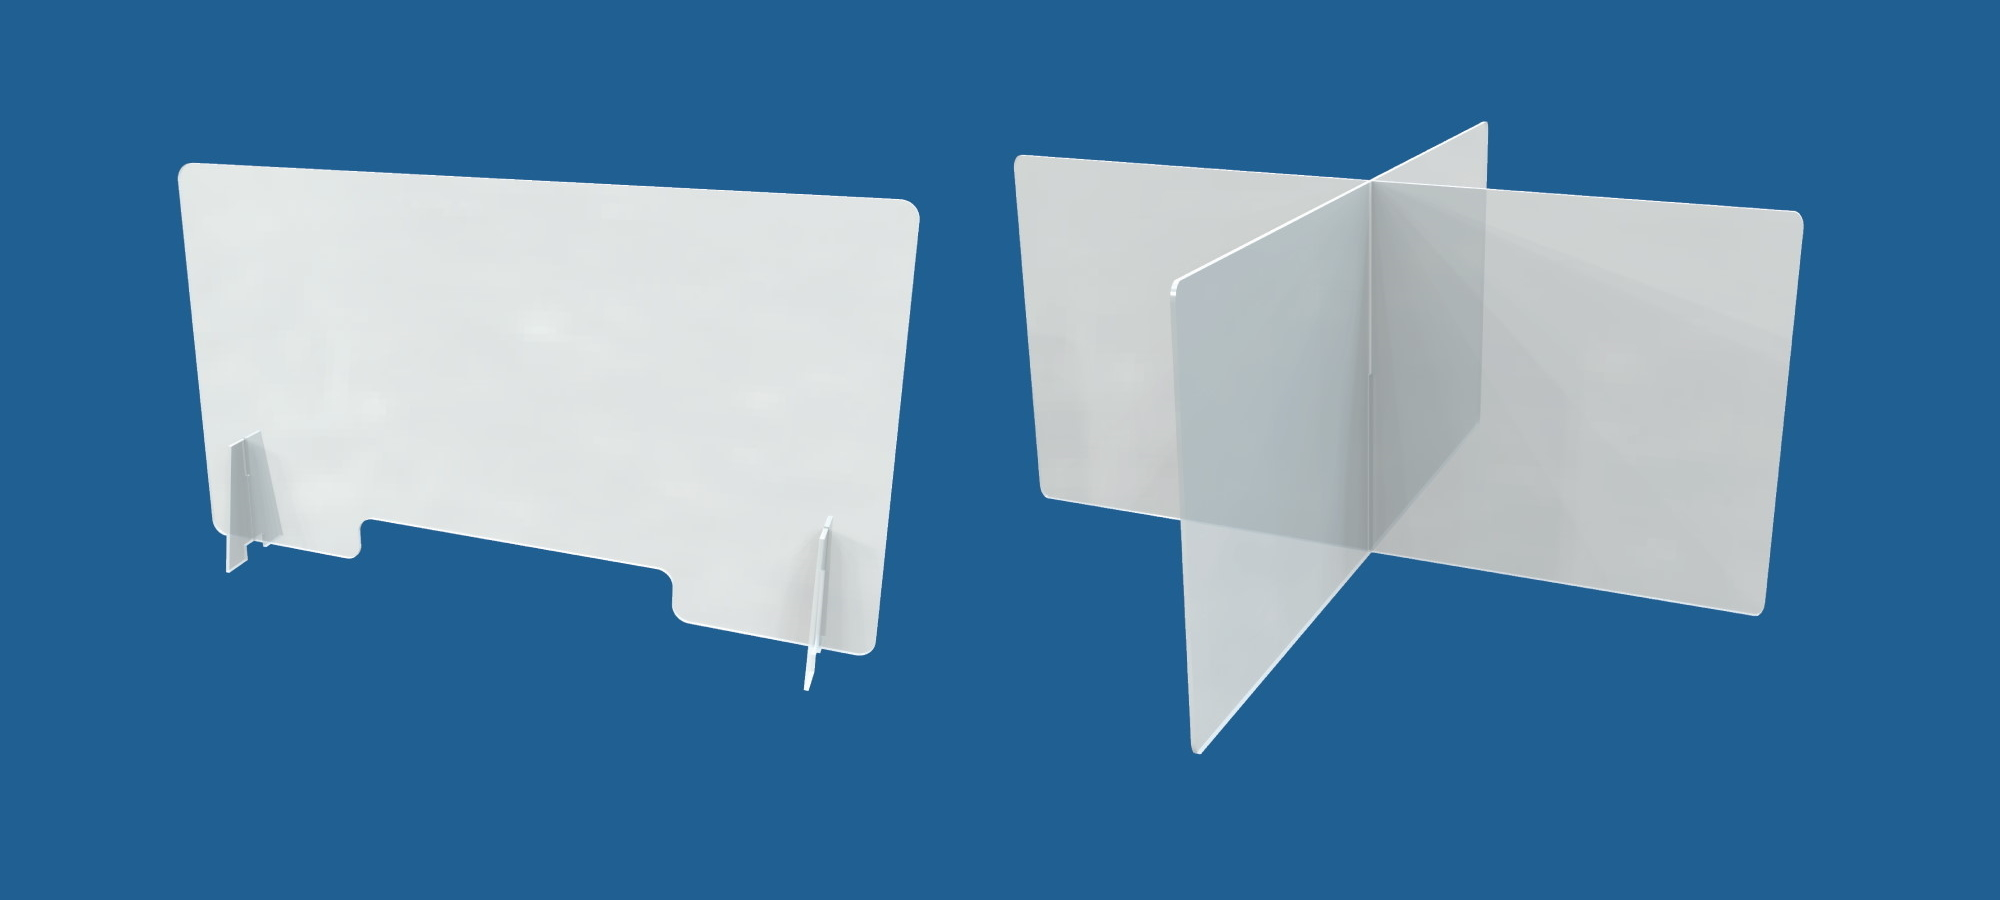 TableSafe Dividers Now Available